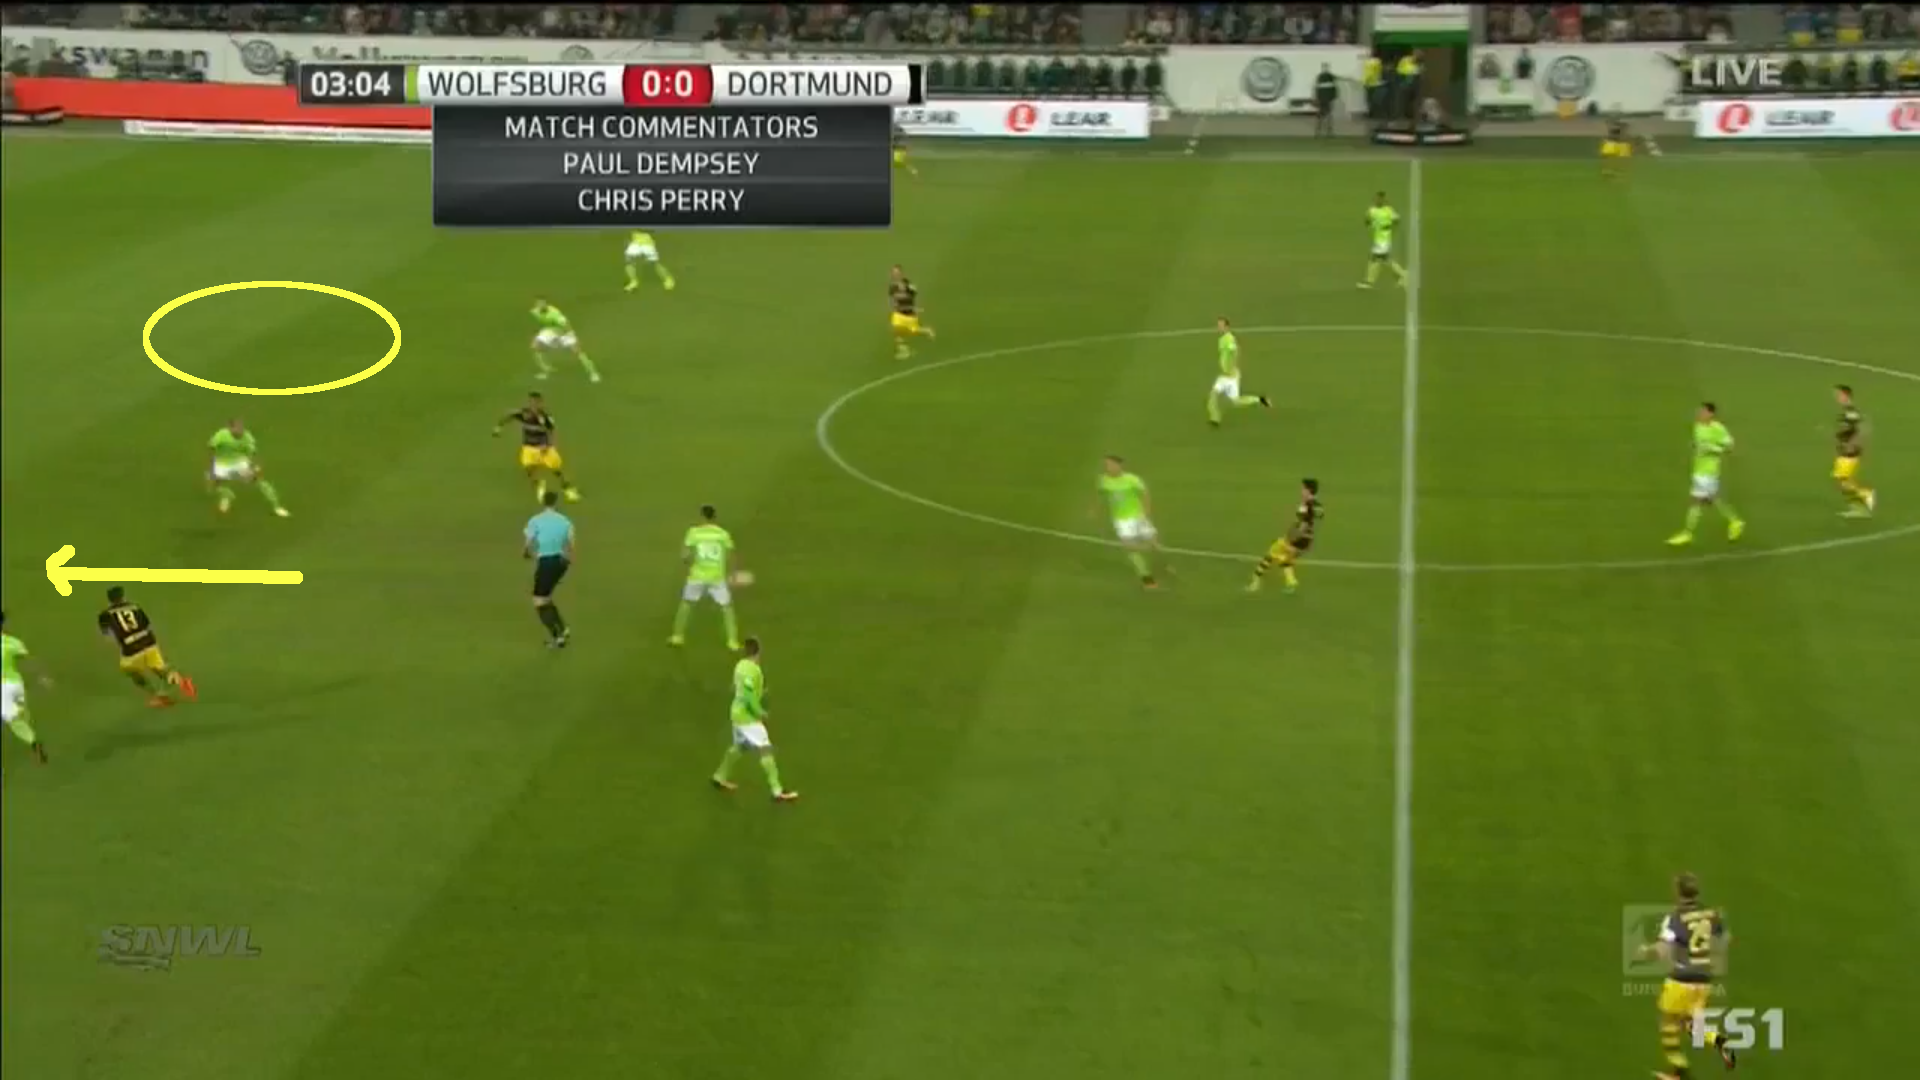 Space created for Aubameyang through Guerreiro's outward run